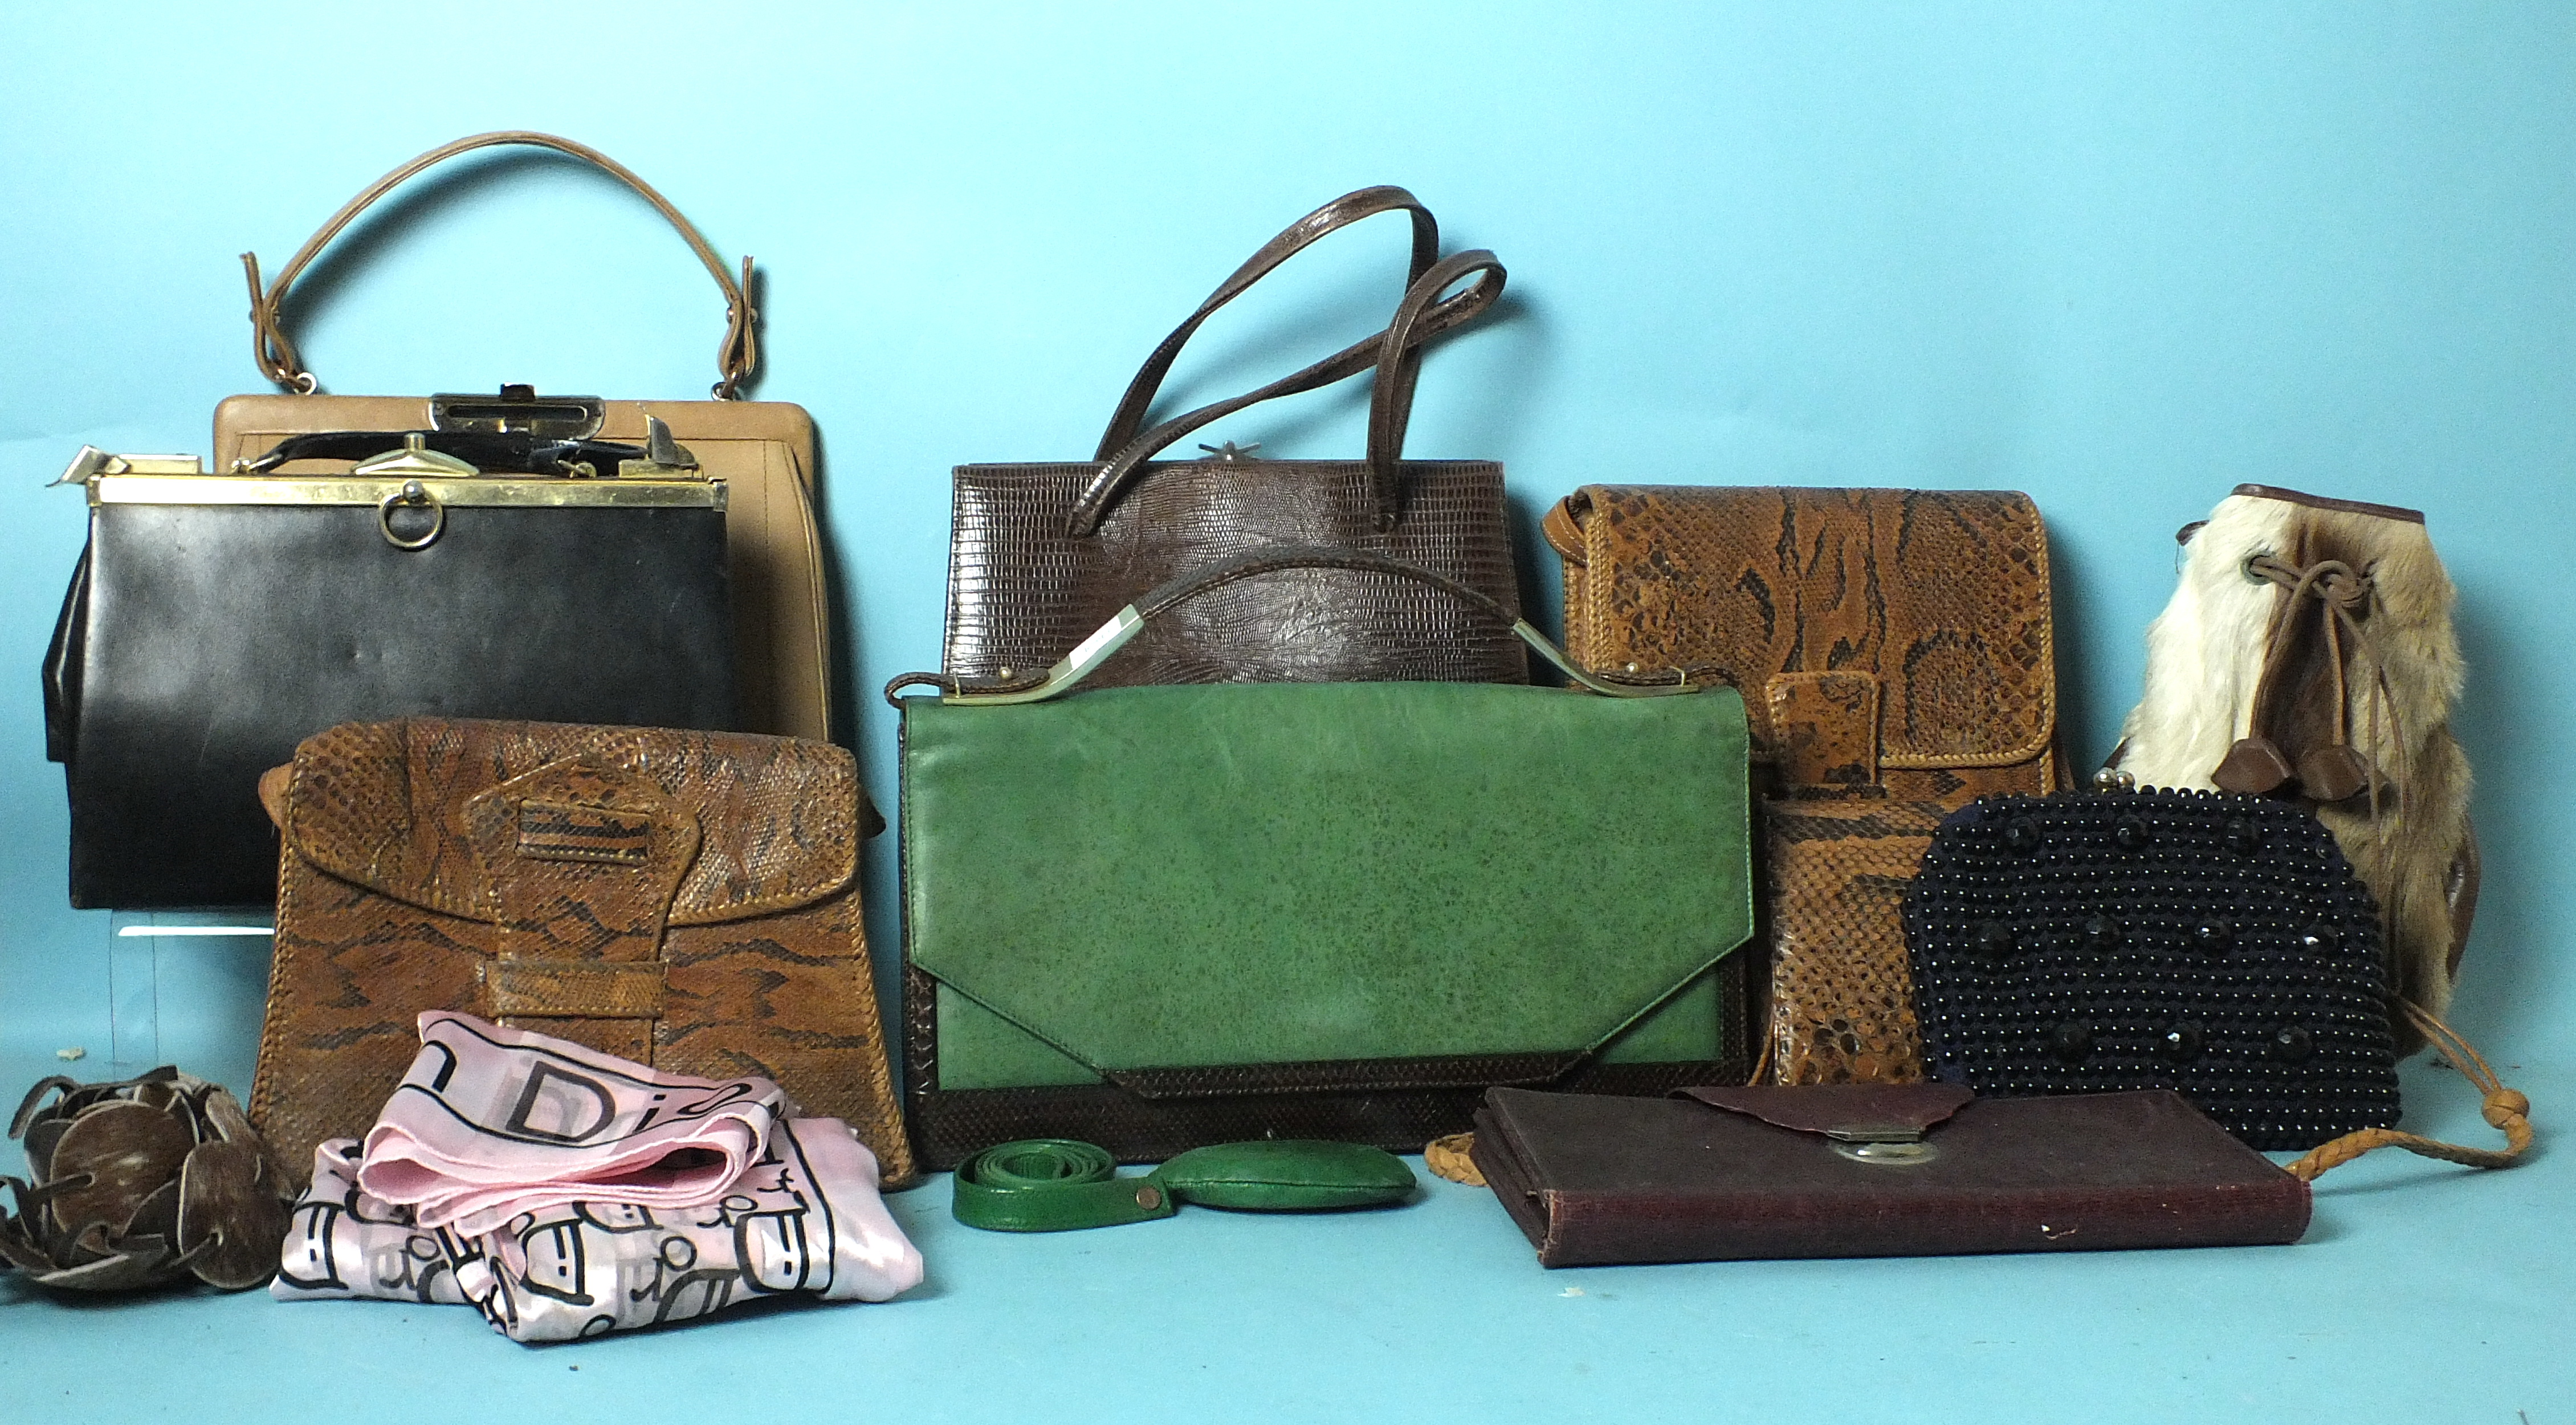 Lot 522 - Ten various handbags: an unnamed green leather and snake skin bag, handbags by Ackery, Bally and